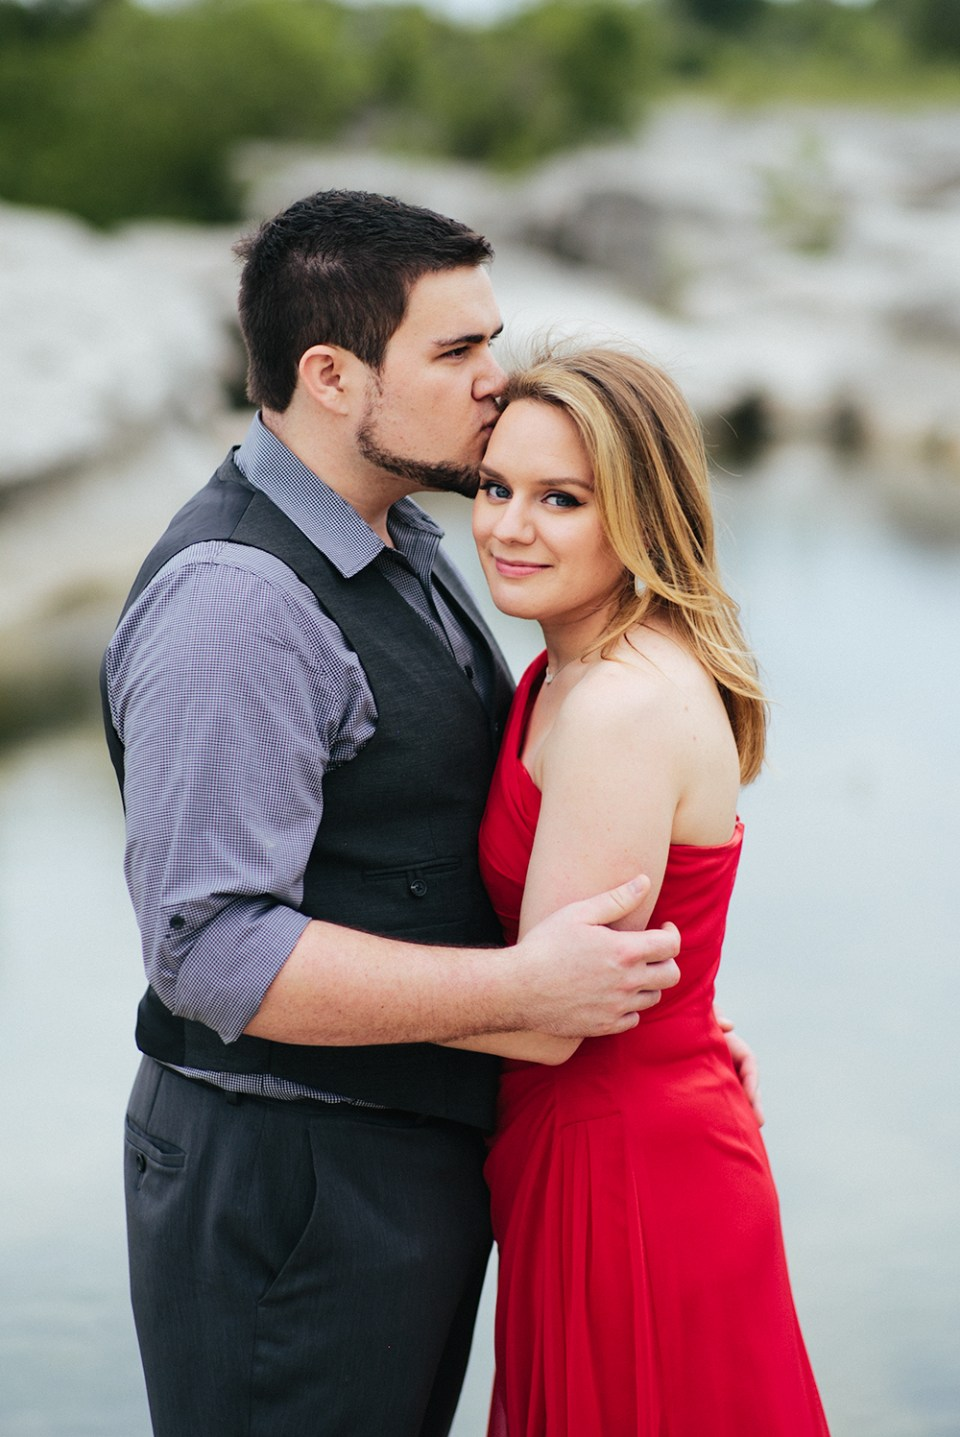 mckinney-falls-engagement-photography-austin-texas-12